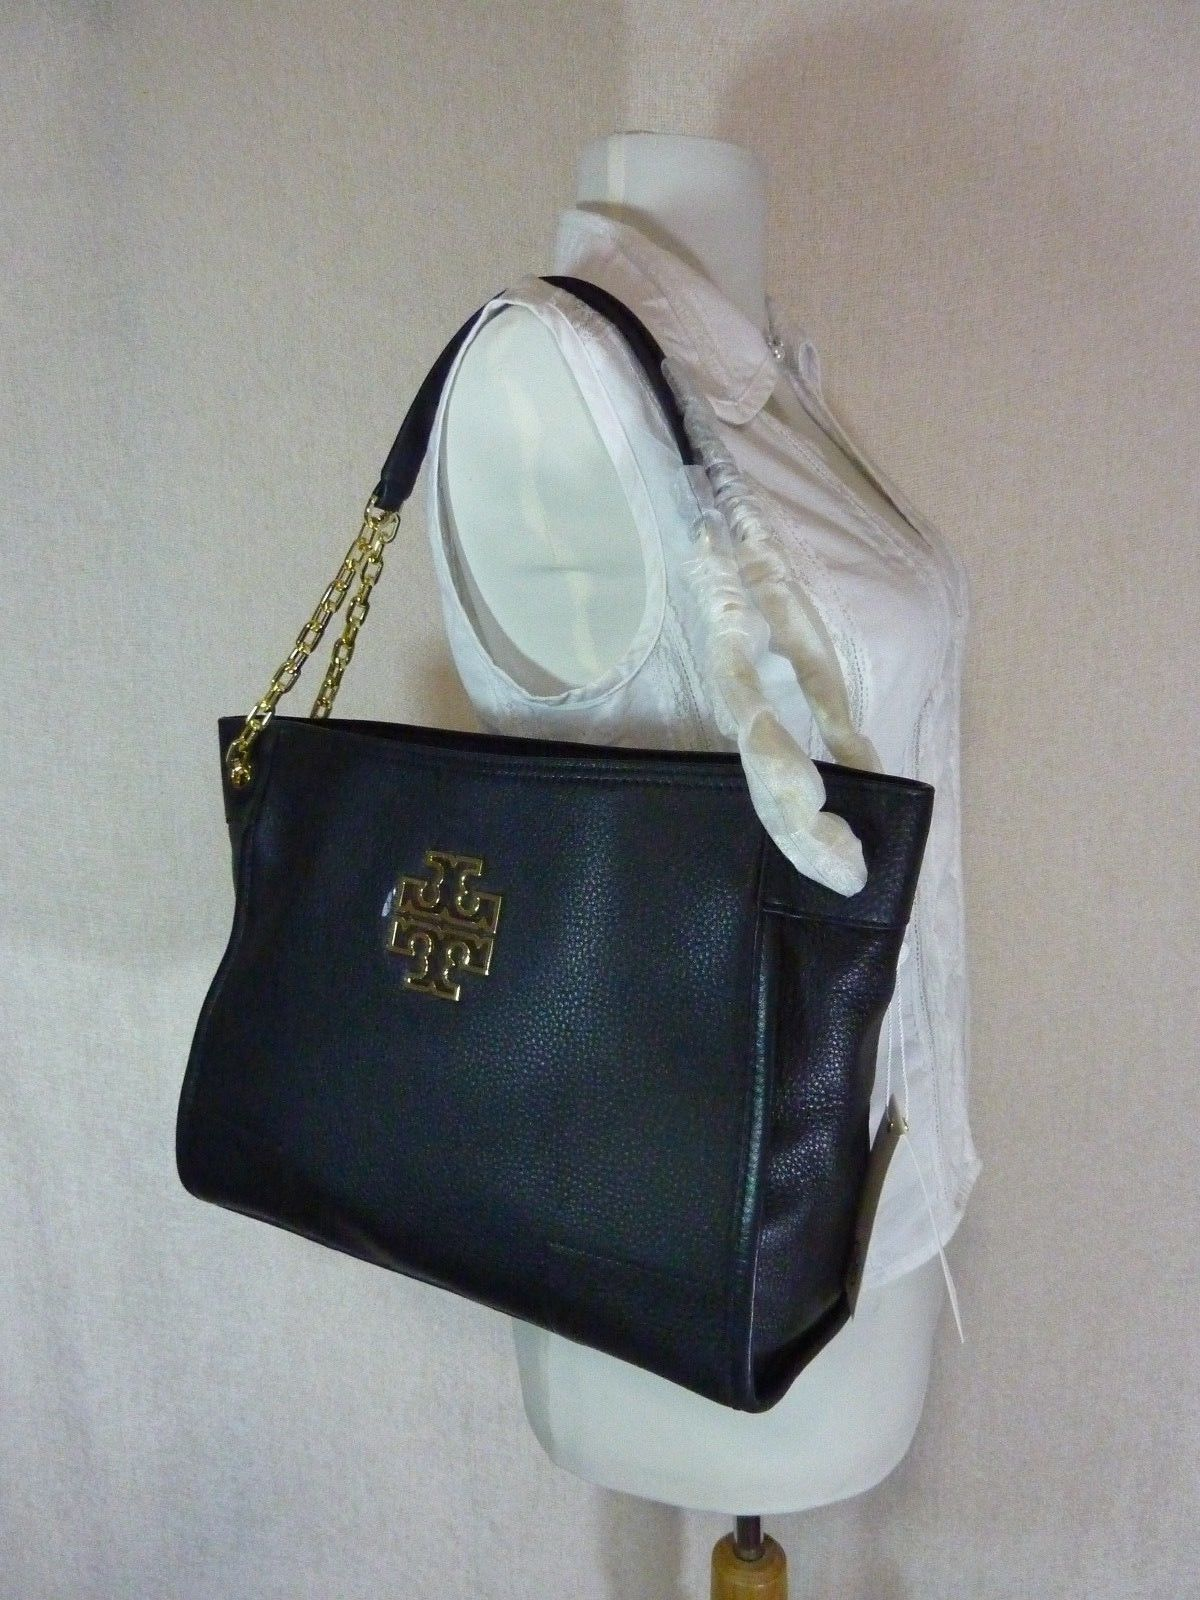 NWT Tory Burch Black Pebbled Leather Small Britten Slouchy Tote - $475